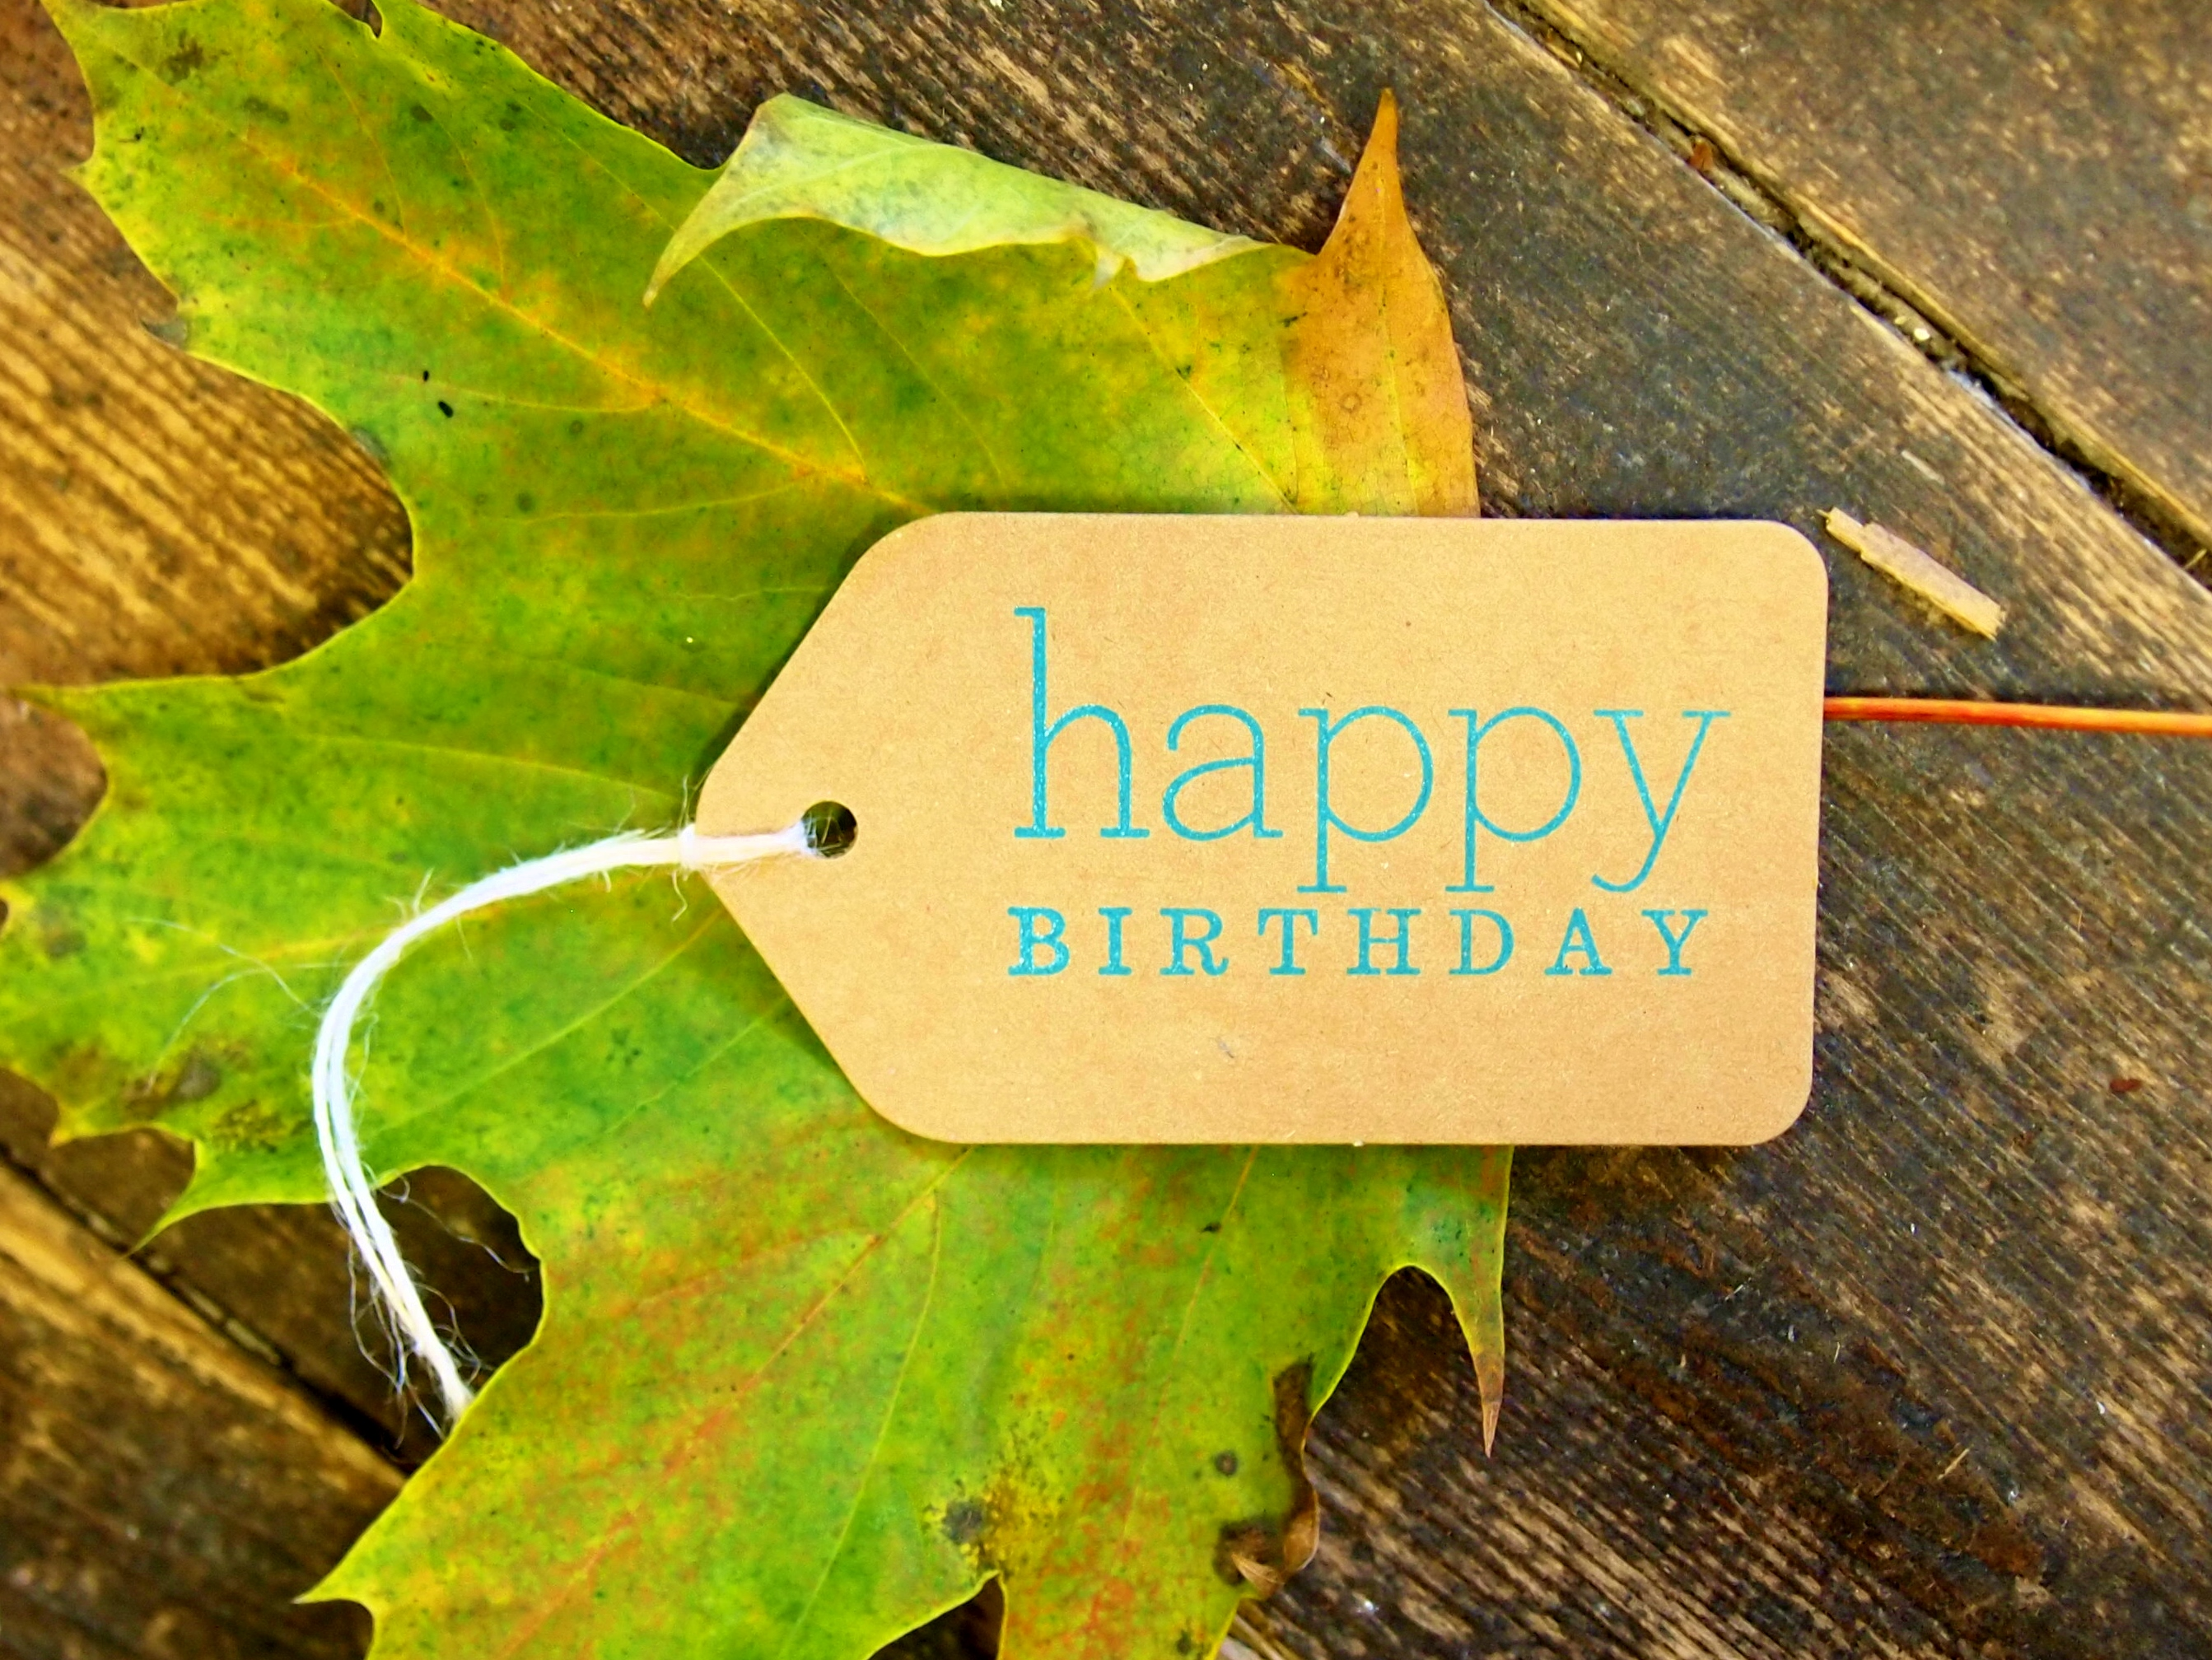 Birthday gift tag